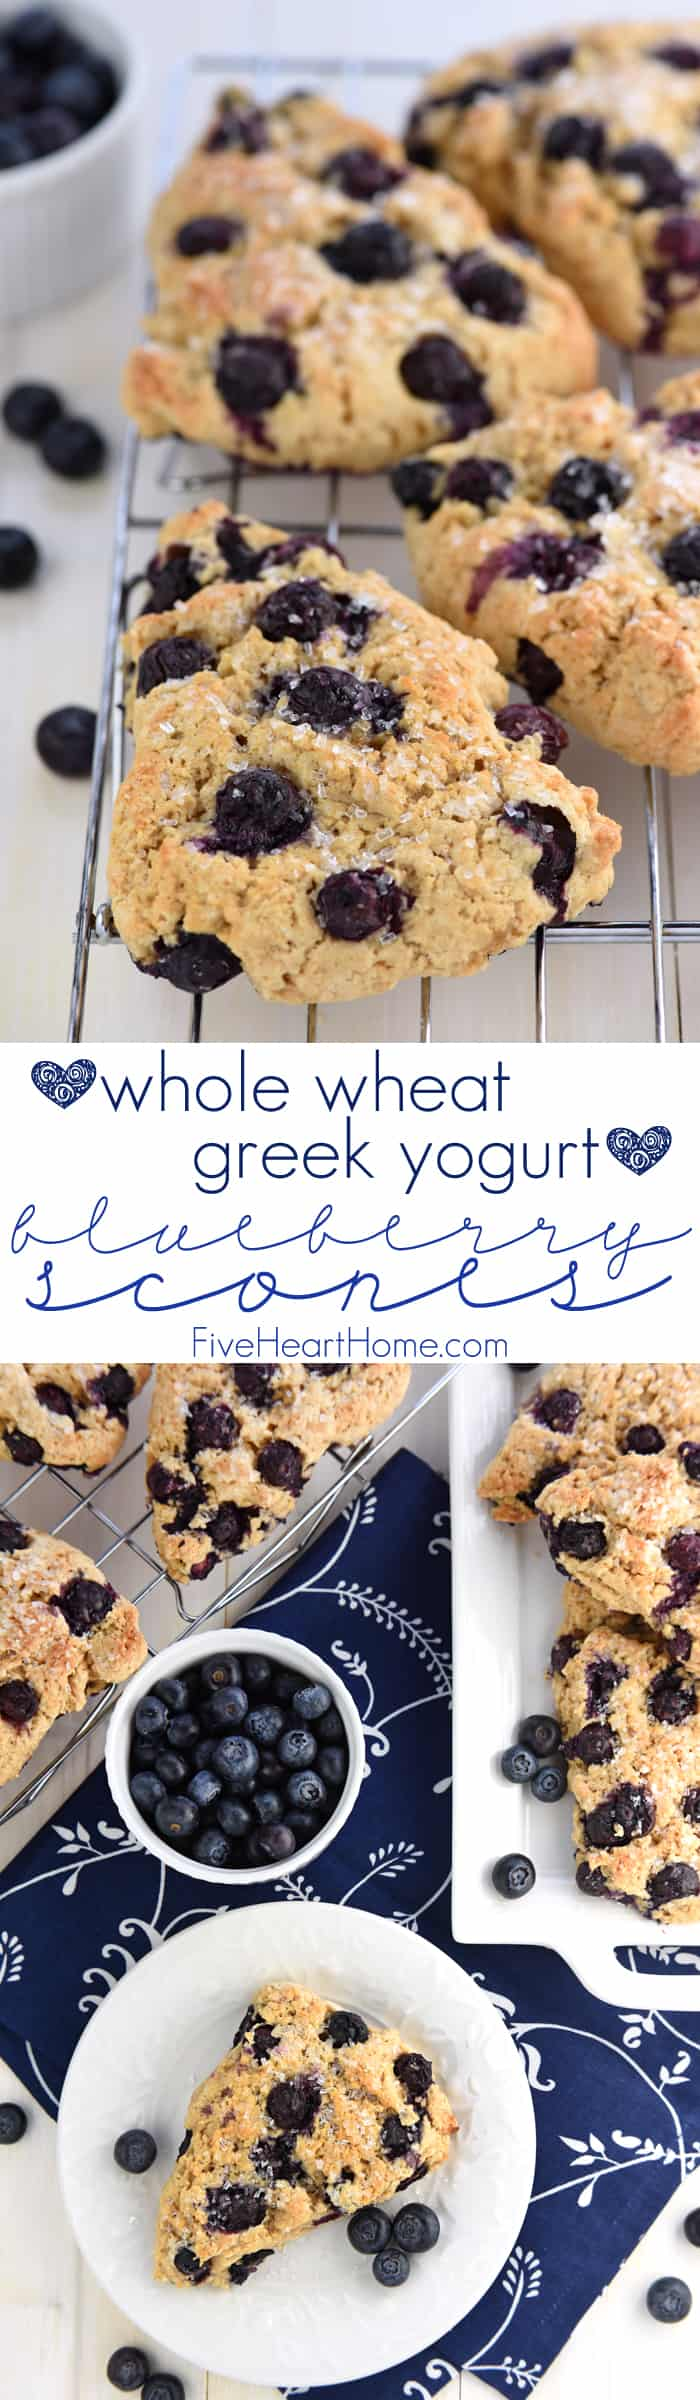 Whole Wheat Greek Yogurt Blueberry Scones Collage with Text Overlay